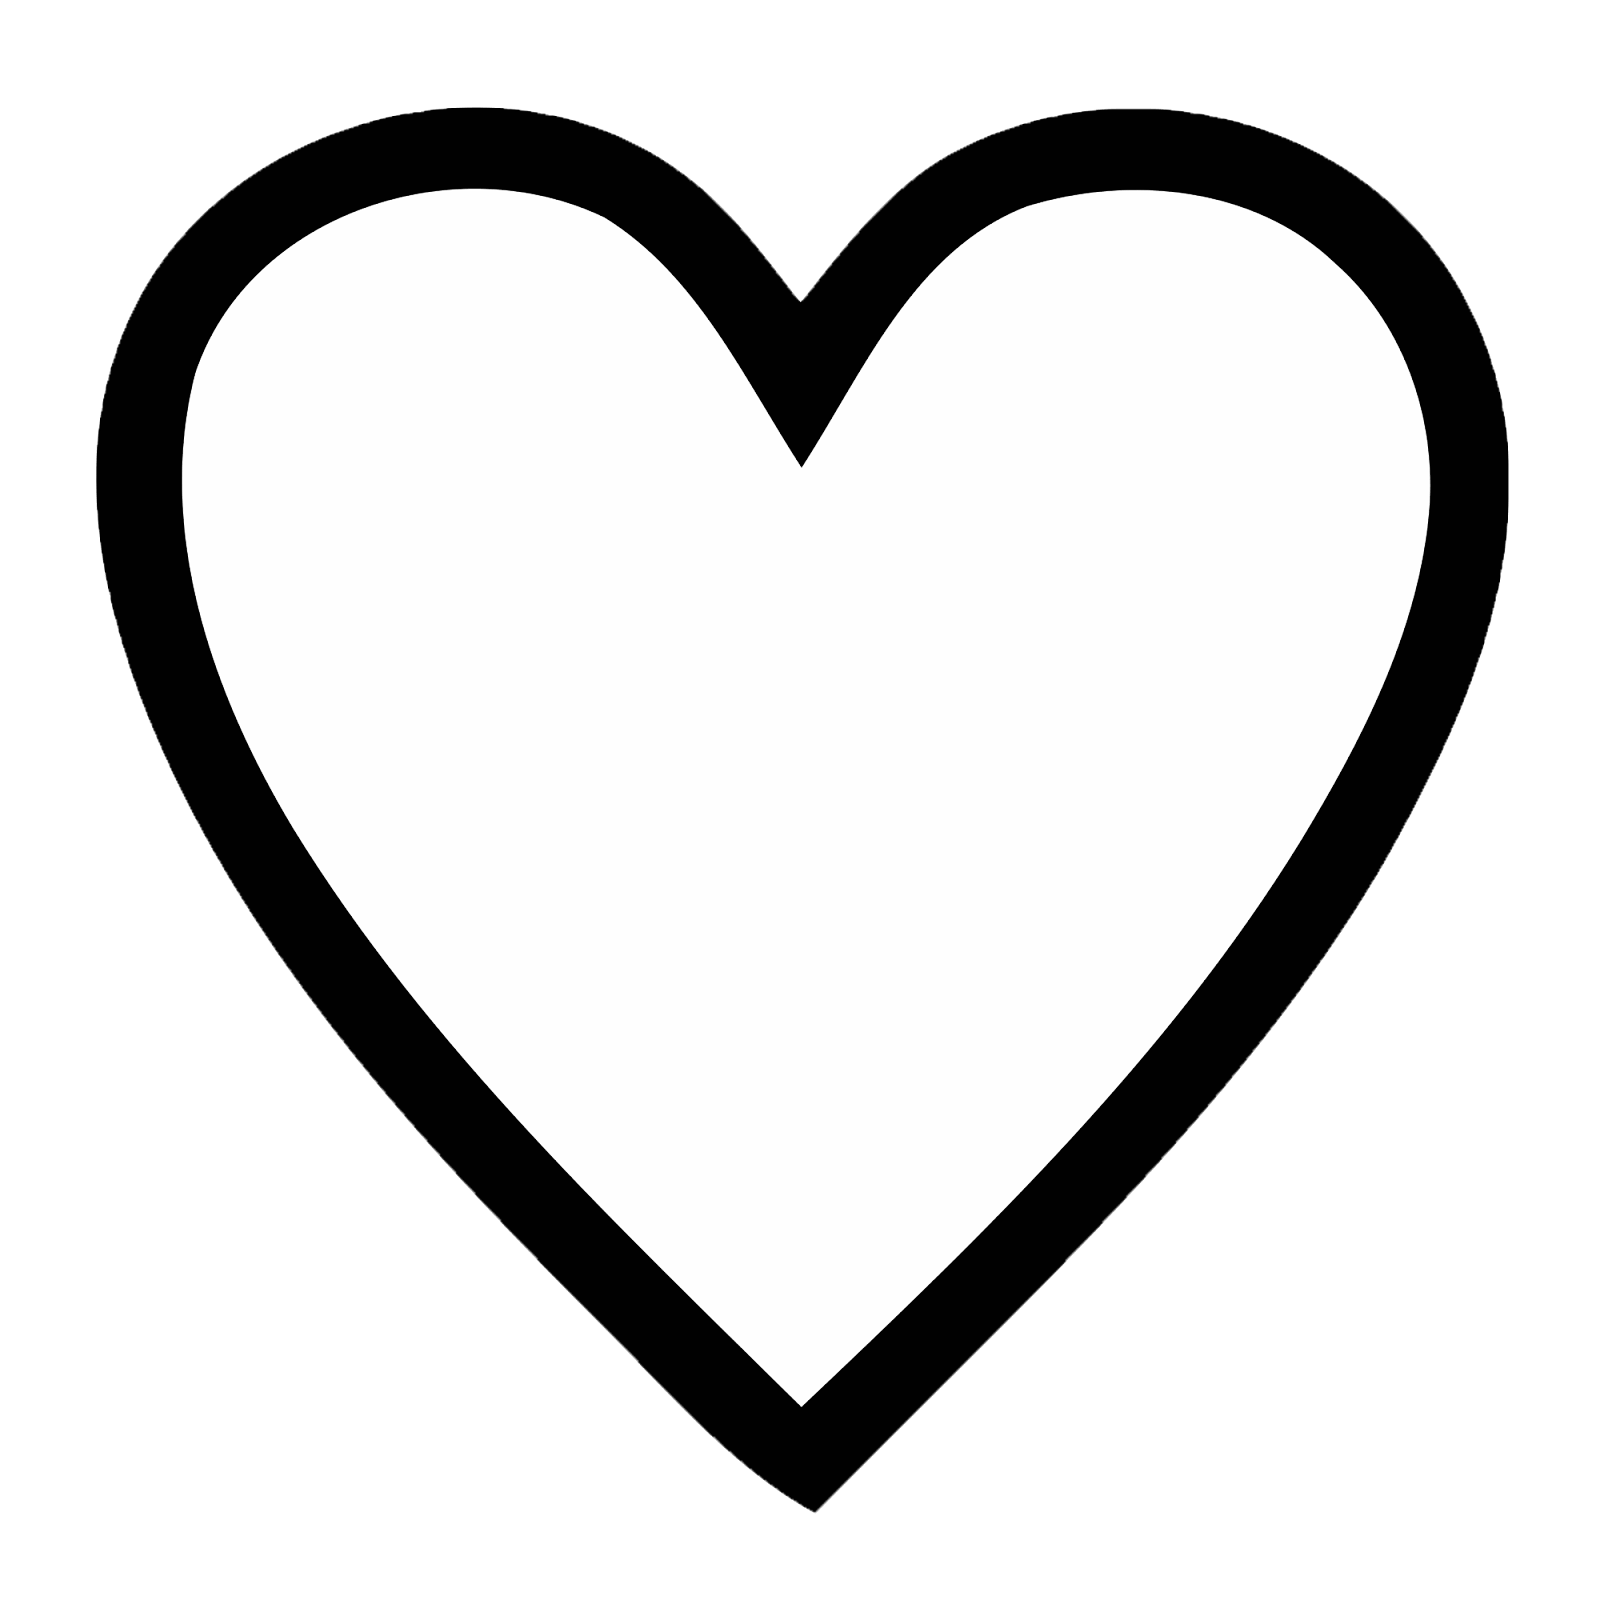 Free Heart Drawing Download Free Clip Art Free Clip Art